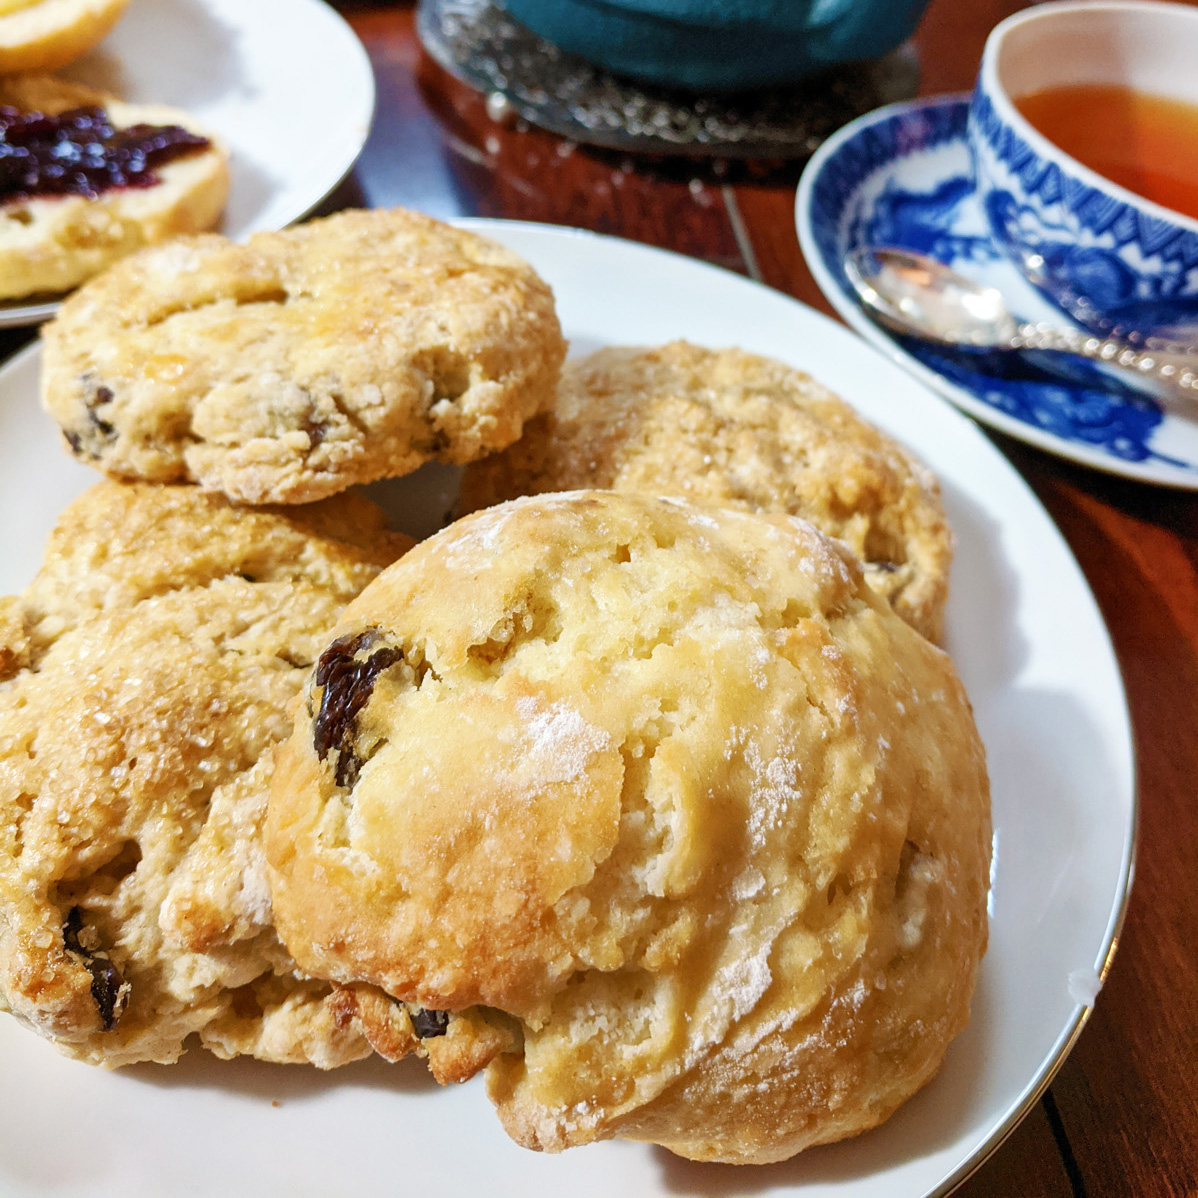 Closeup of a plate full of raisin scones on a wooden table. A white and blue teacup and saucer full of tea can be seen in the background.